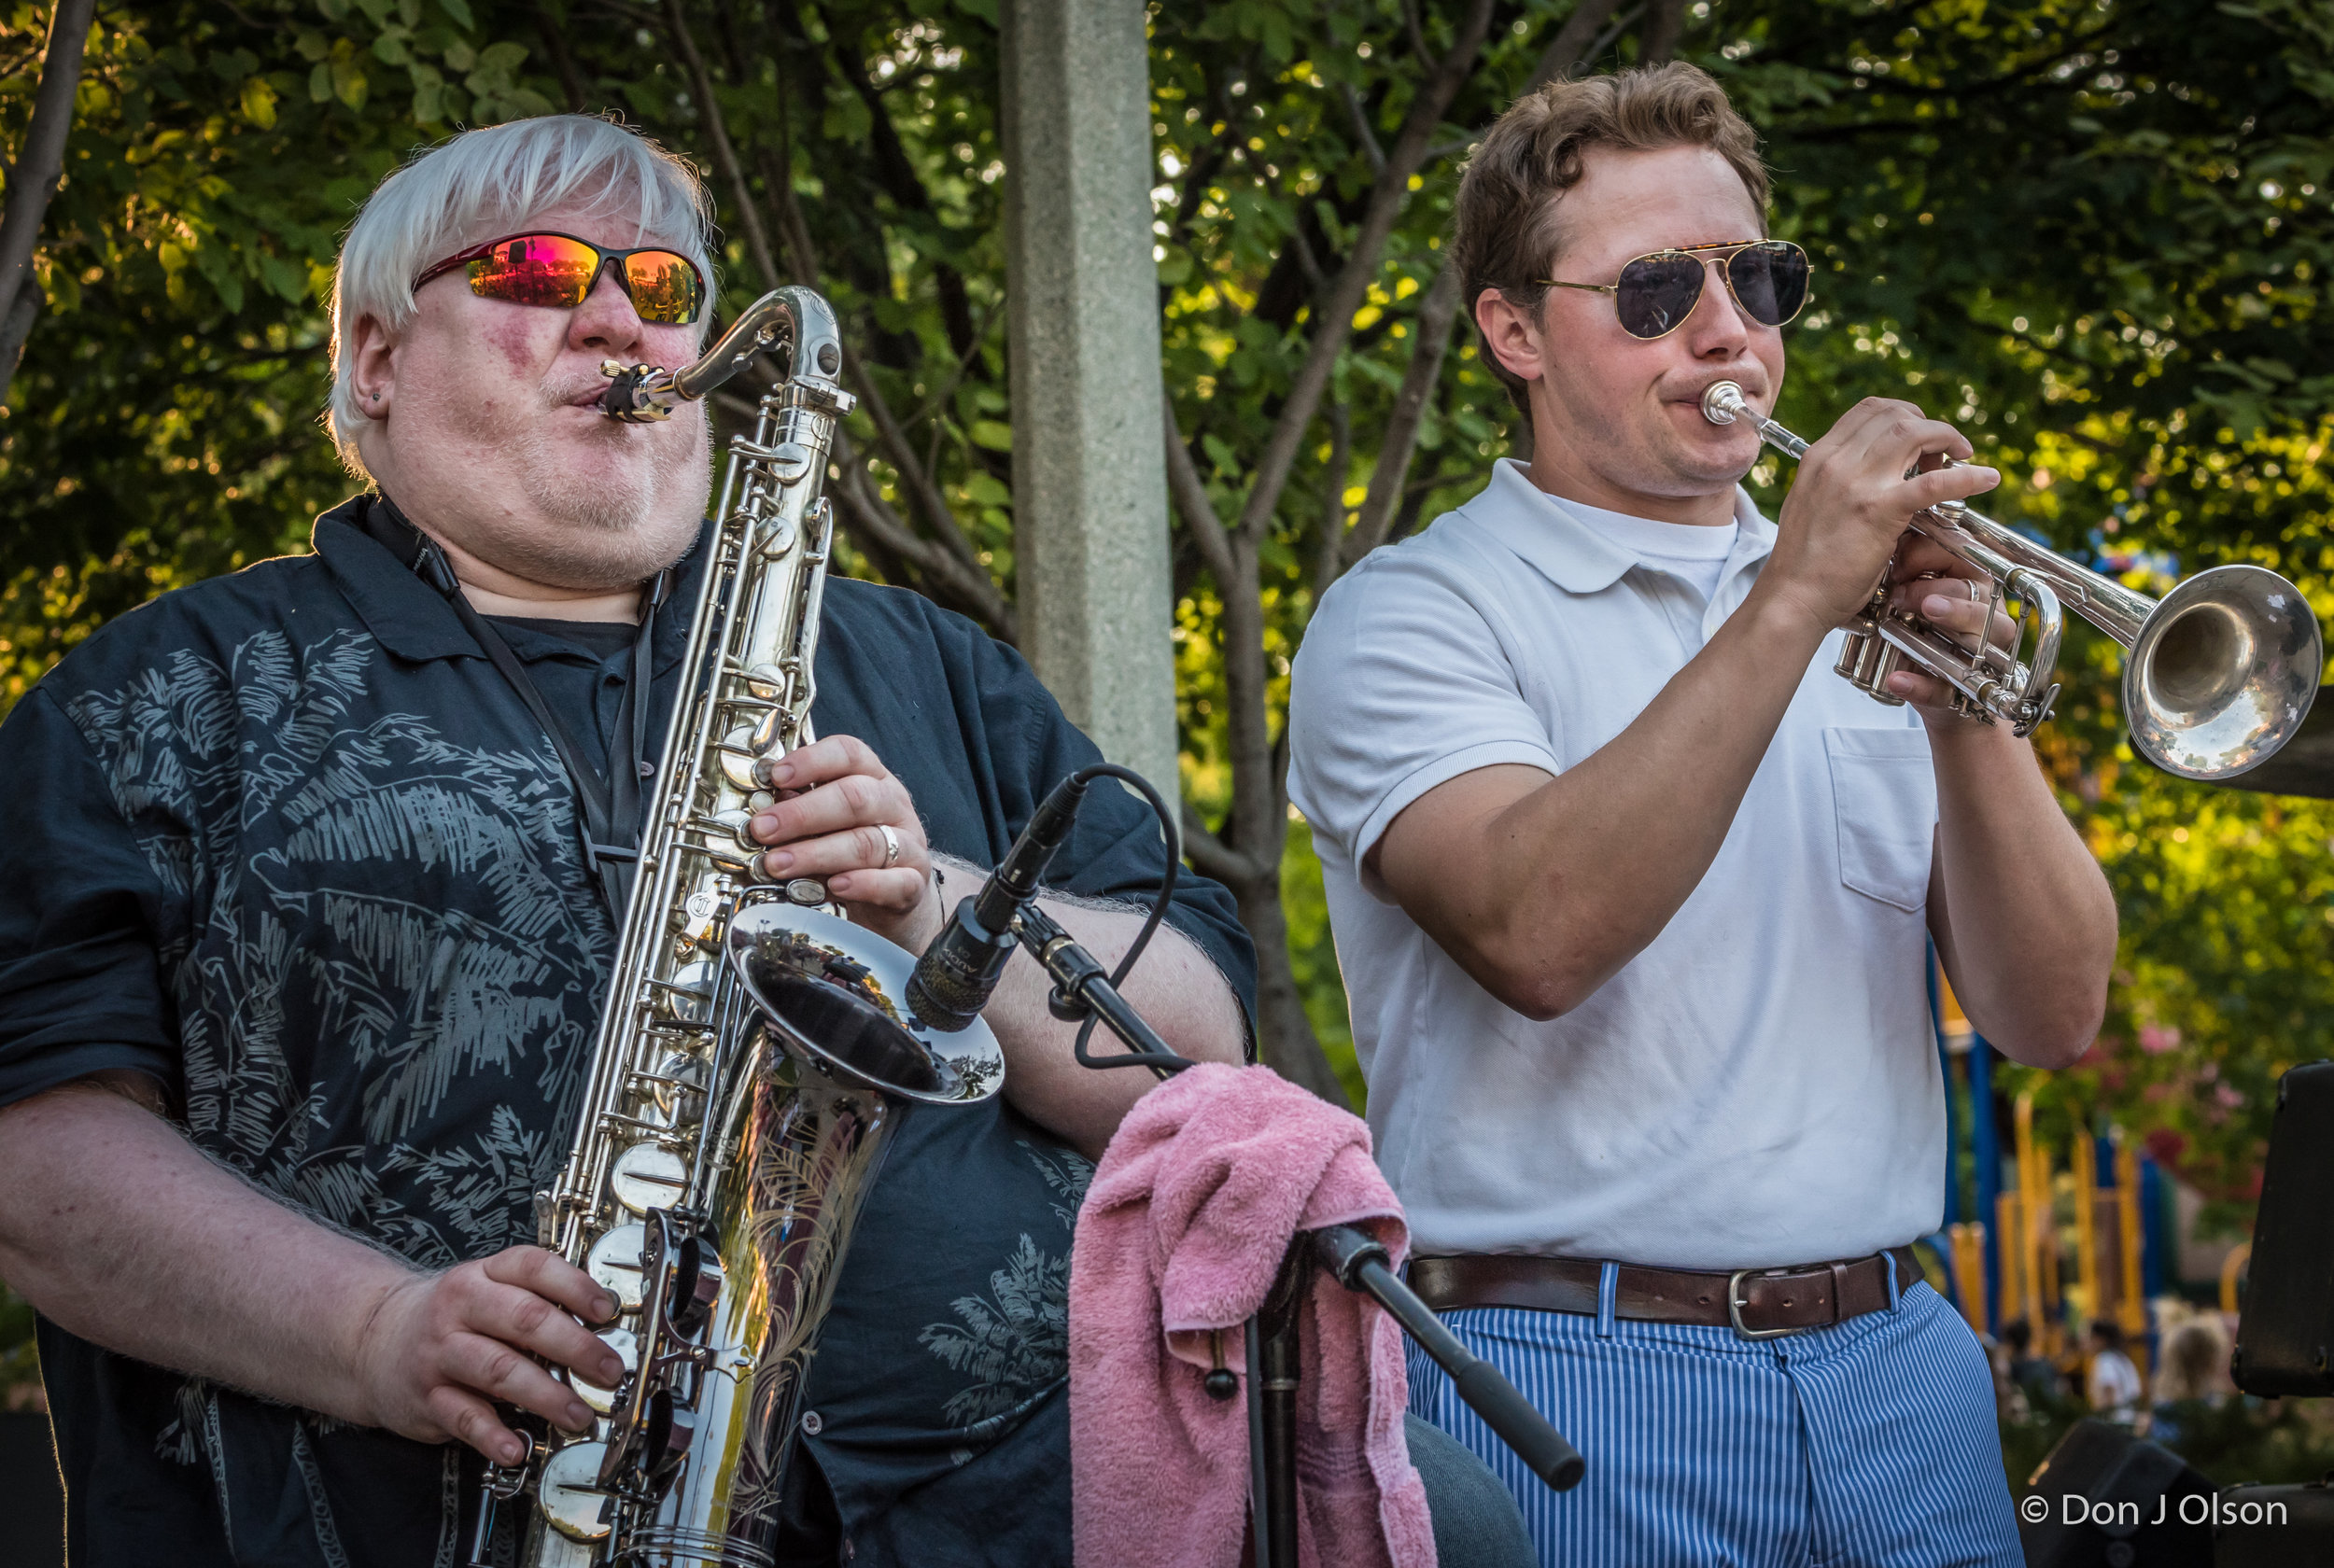 Brian Powers and Paul Odegaard / The Veterans' Memorial Wolfe Park Amphitheater / St. Louis Park, Minnesota / July 29th, 2017